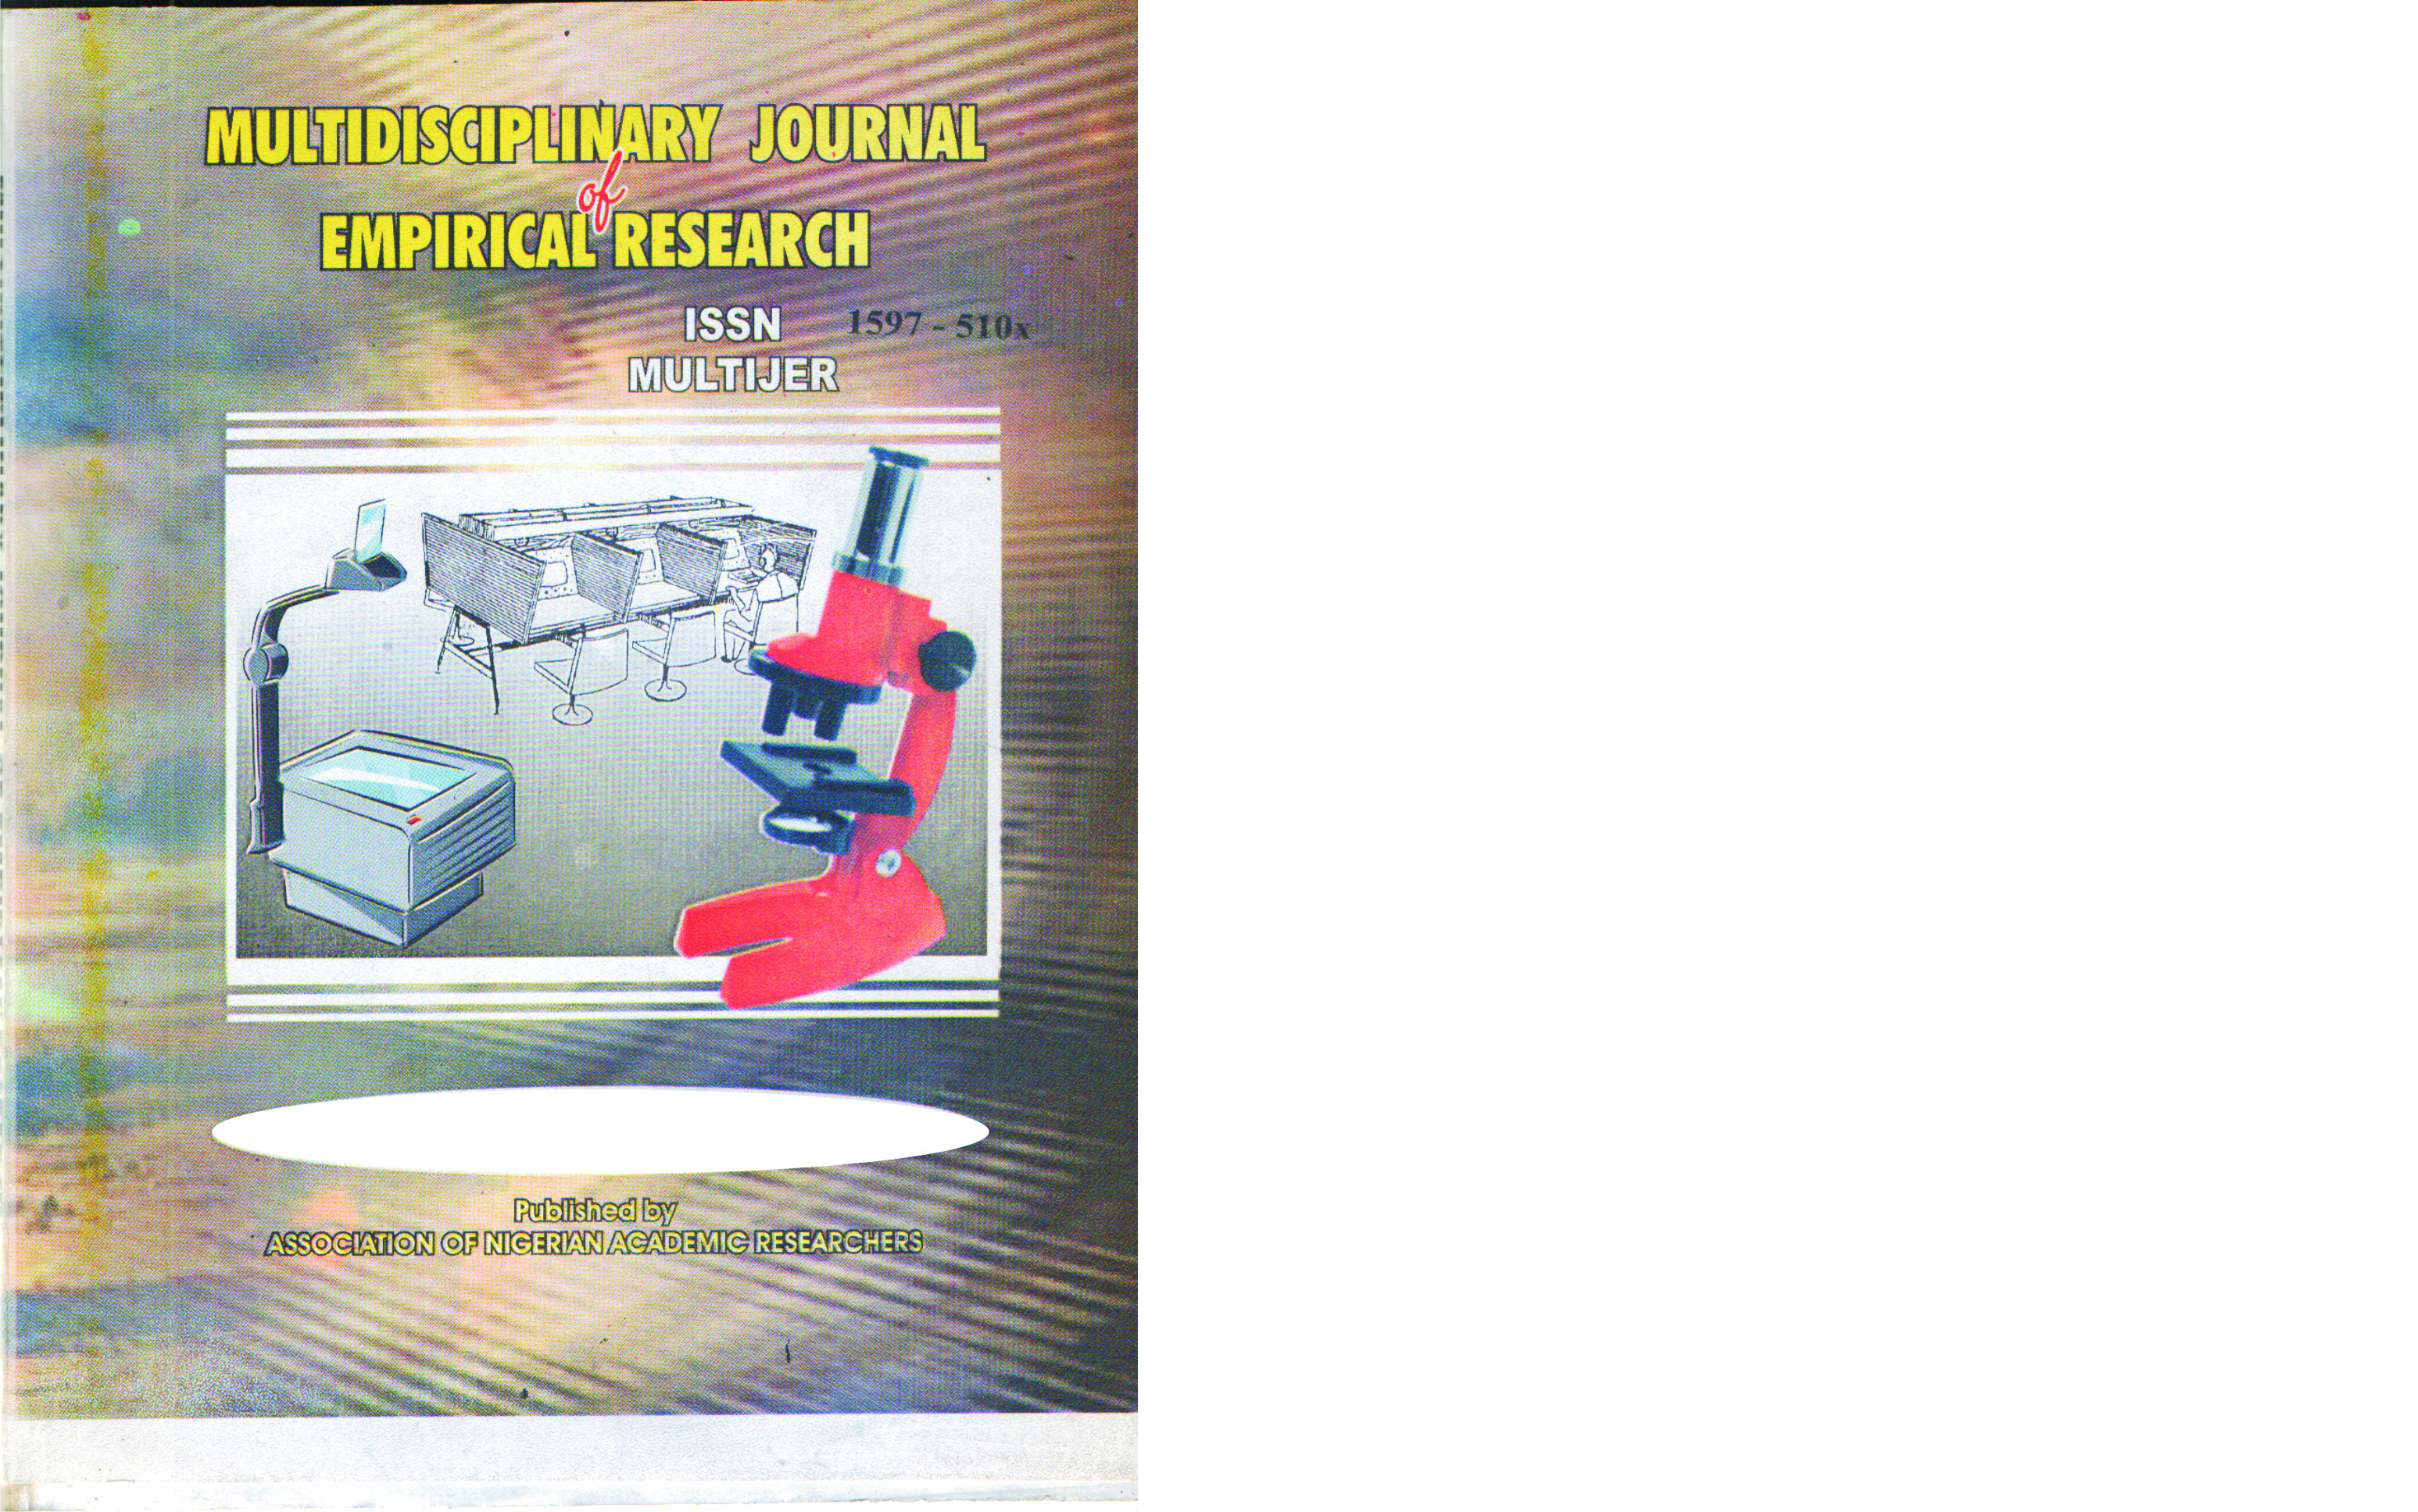 About Multidisciplinary Journal of Empirical Research